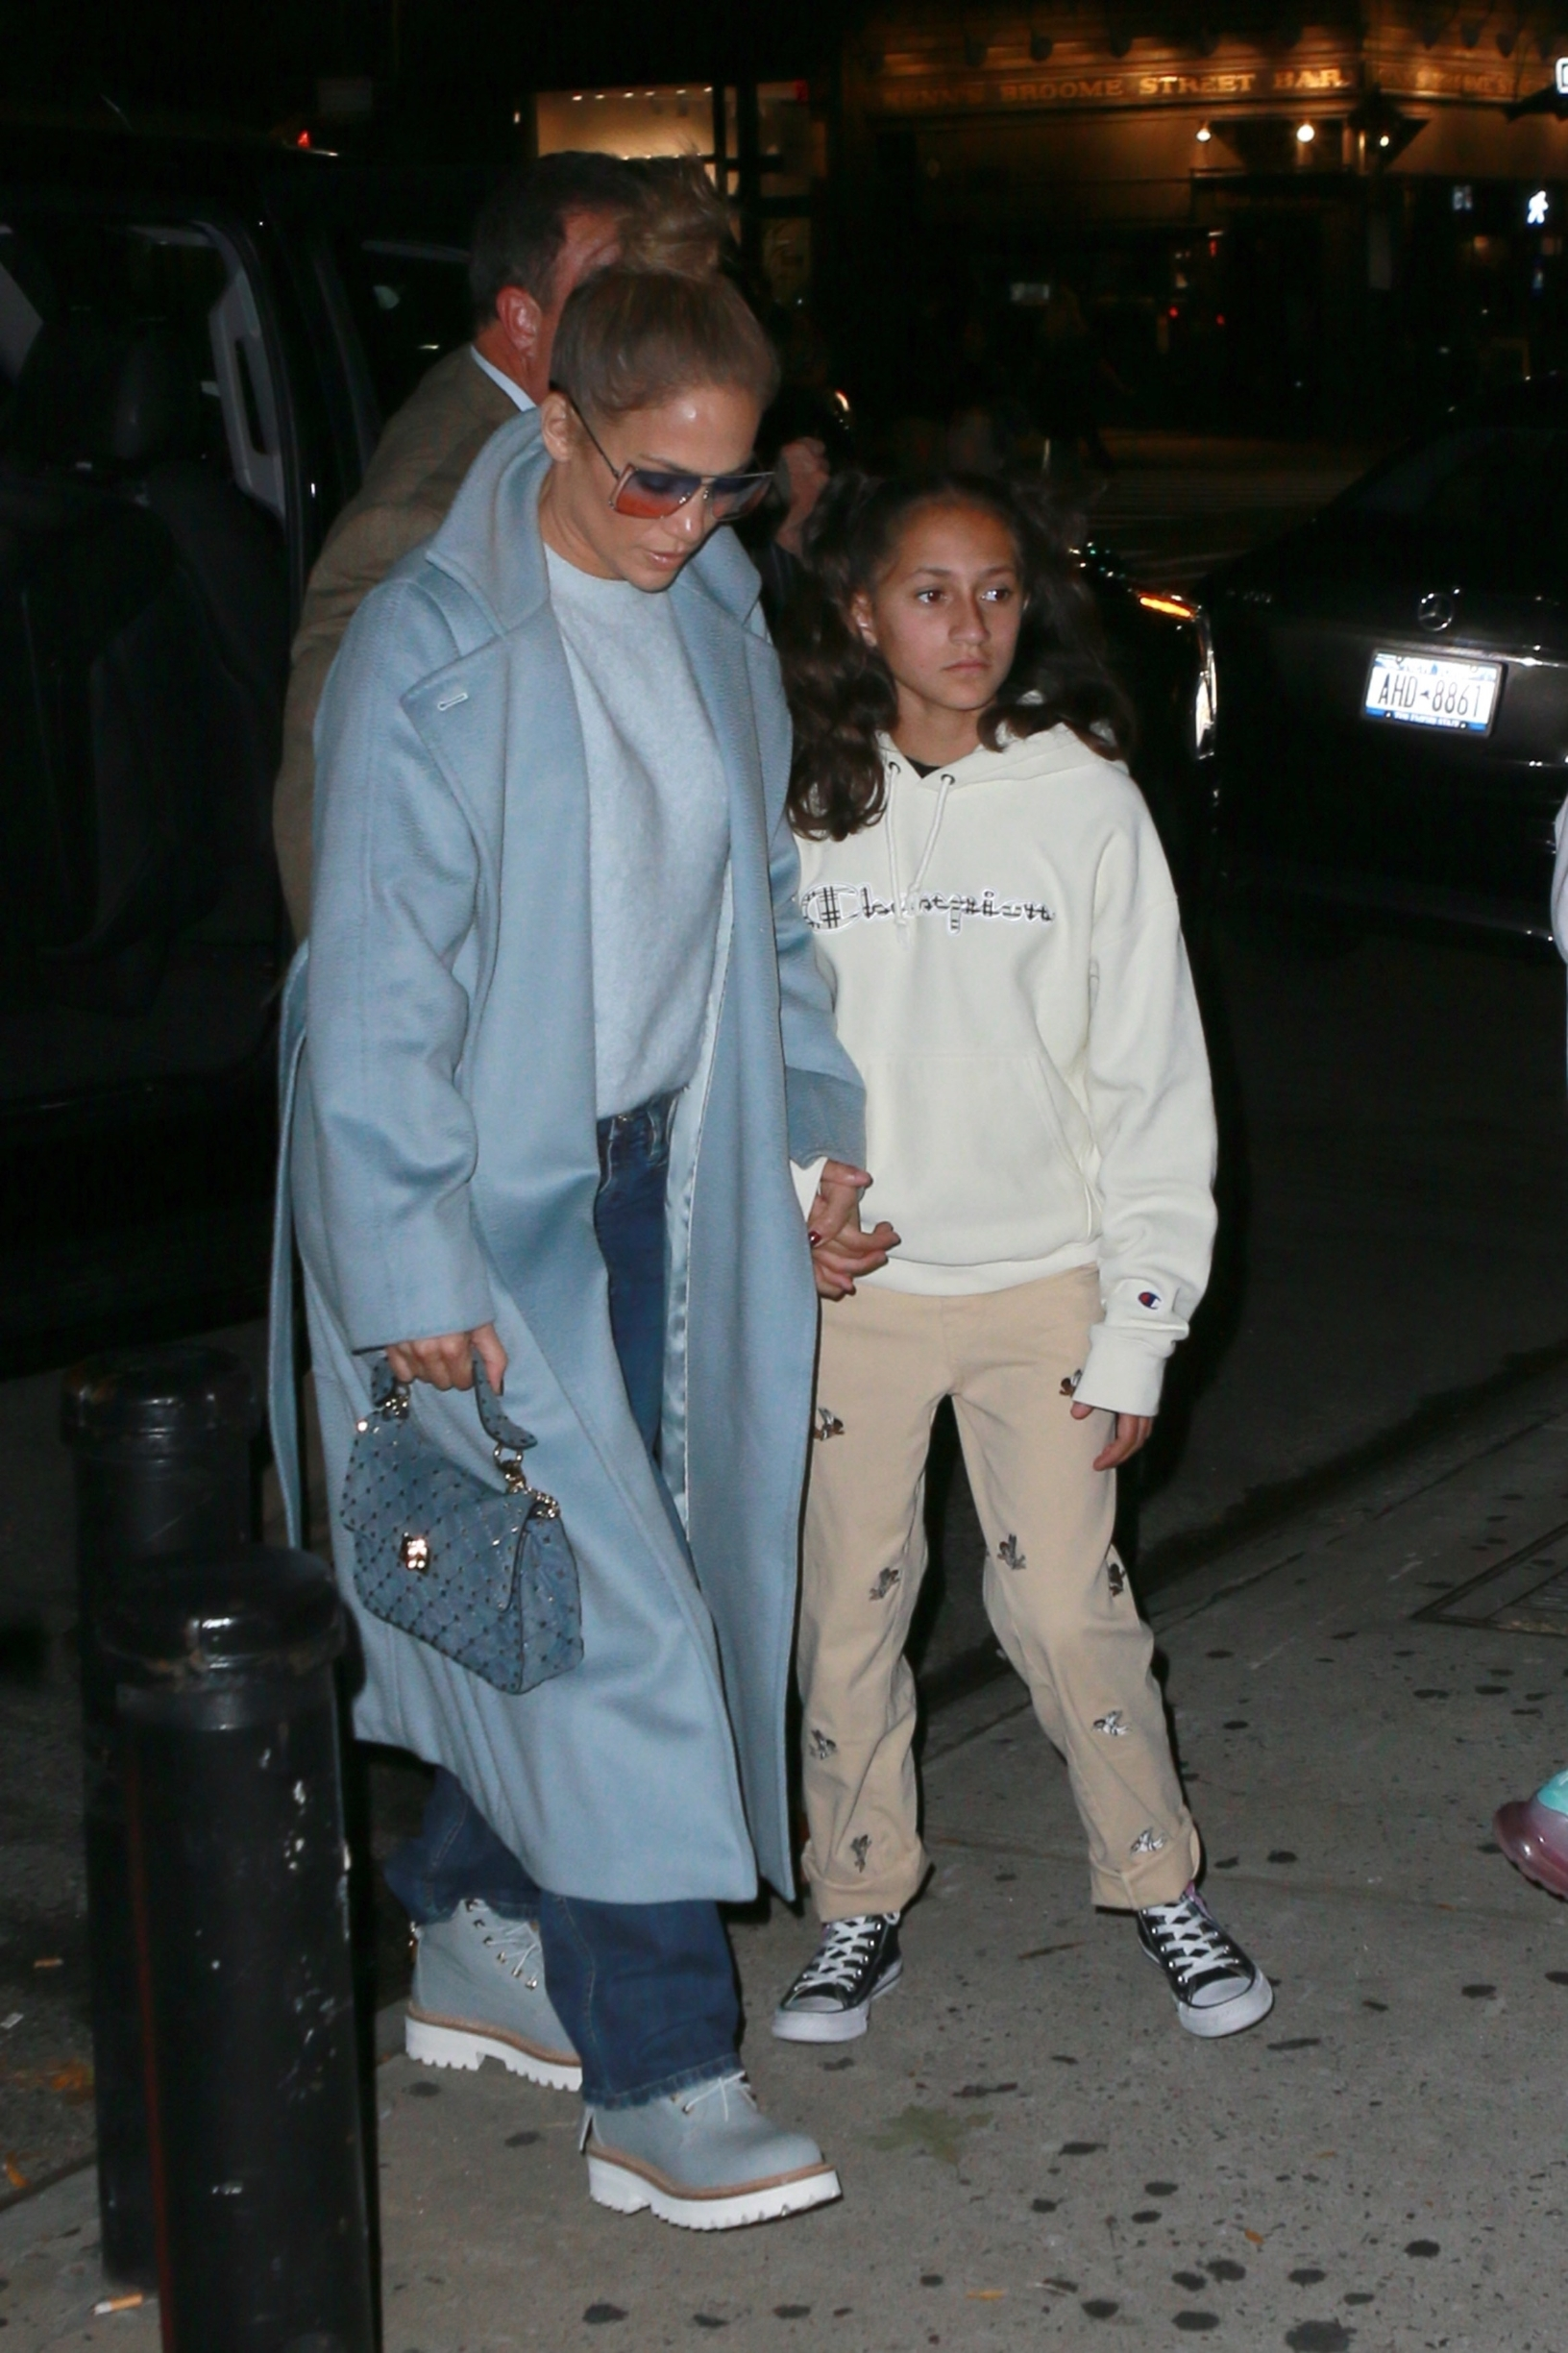 New York, NY  - Jennifer Lopez heads to Cipriani with her sister and kids for some dinner. The singer and actress looked great in a light blue coat and jeans.  BACKGRID USA 12 OCTOBER 2019, Image: 476420320, License: Rights-managed, Restrictions: , Model Release: no, Credit line: T.JACKSON / BACKGRID / Backgrid USA / Profimedia